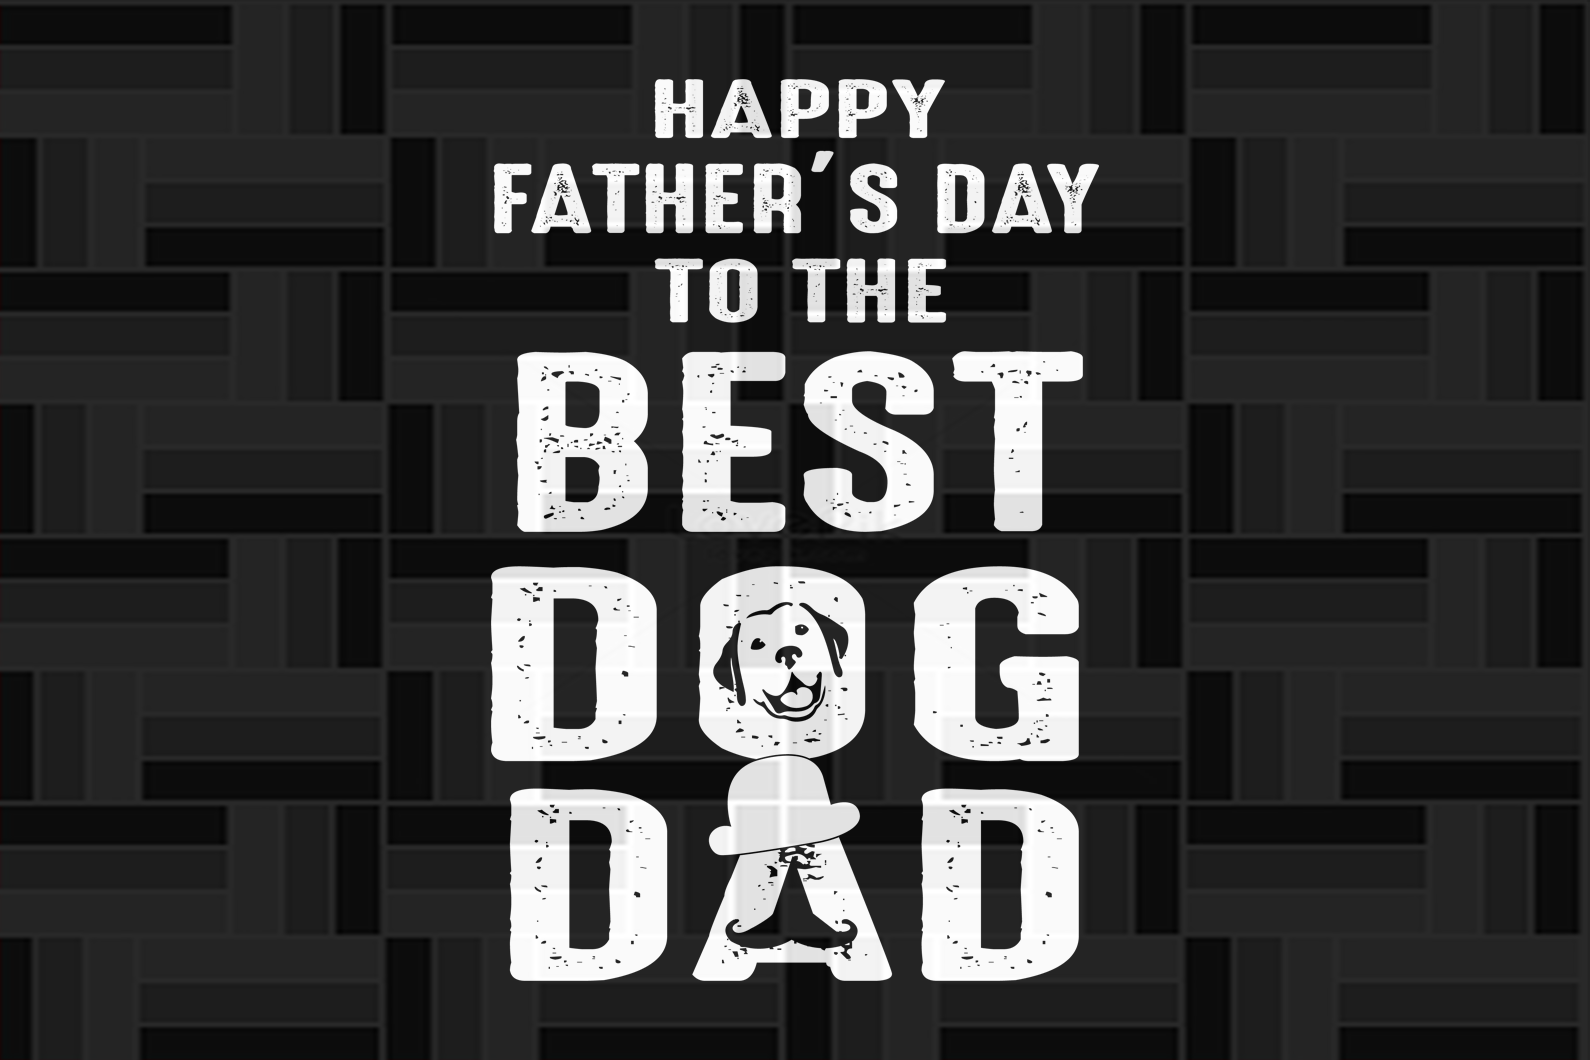 Happy father's day to the best dog dad, papa svg, baba svg,father's day svg, father svg, dad svg, daddy svg, poppop svg Files For Silhouette, Files For Cricut, SVG, DXF, EPS, PNG, Instant Download